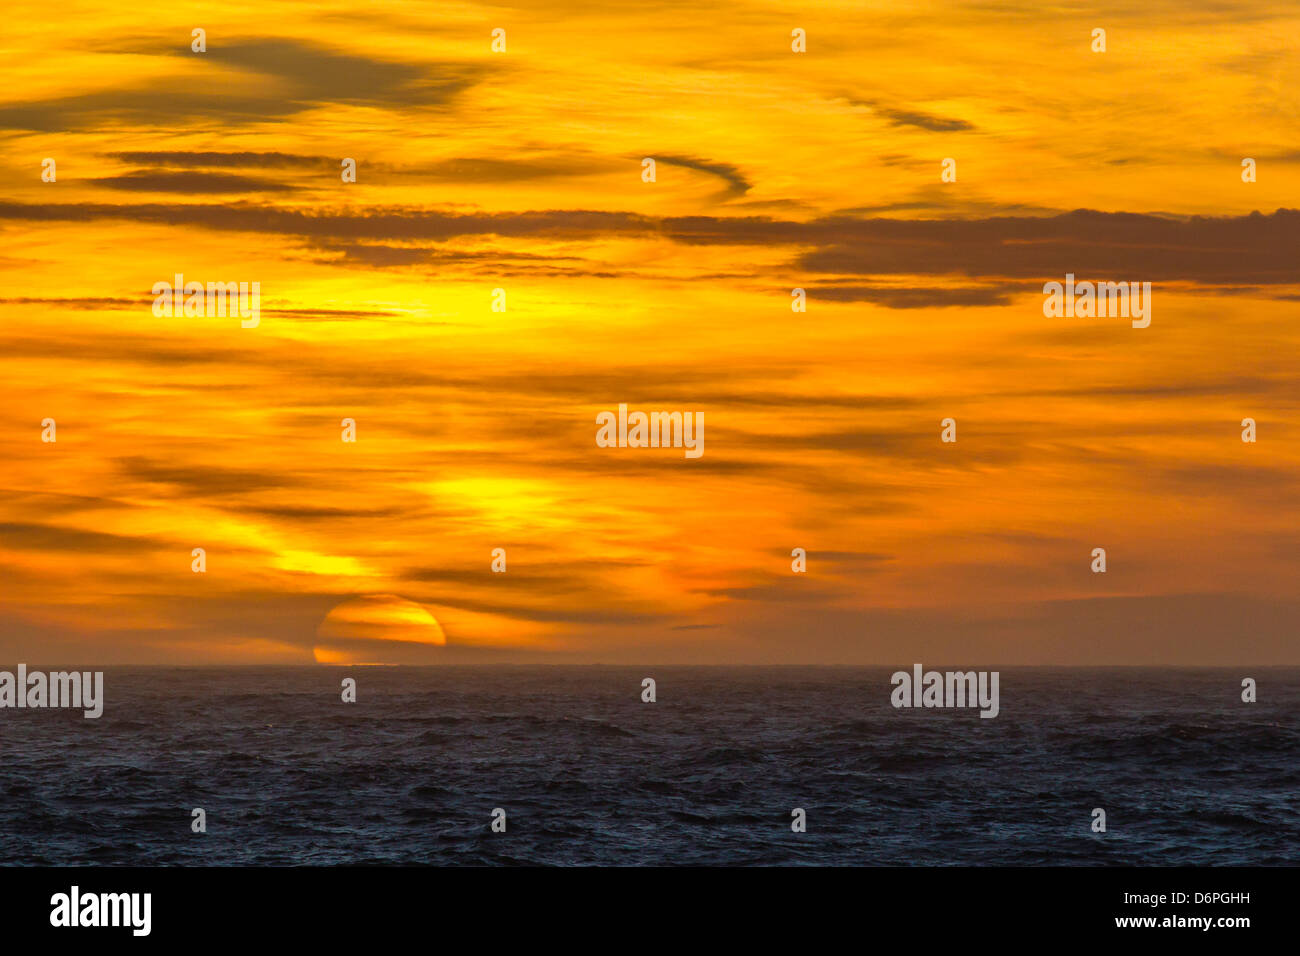 Sunset over South Georgia, U.K. Overseas Protectorate, South Atlantic Ocean, Polar Regions - Stock Image